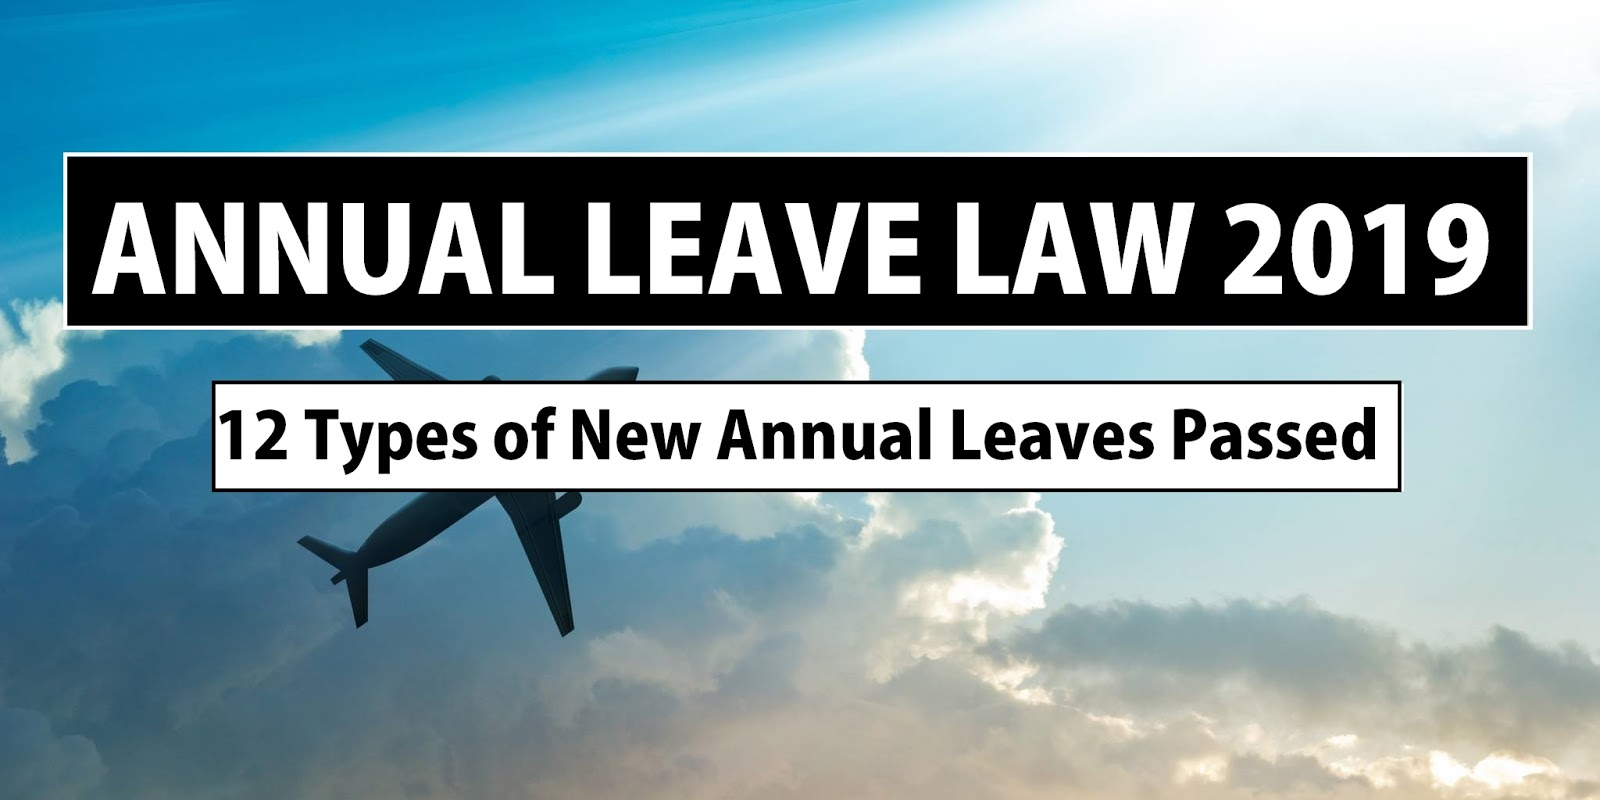 UAE Annual Leave Law 2019 - UAE LABOURS